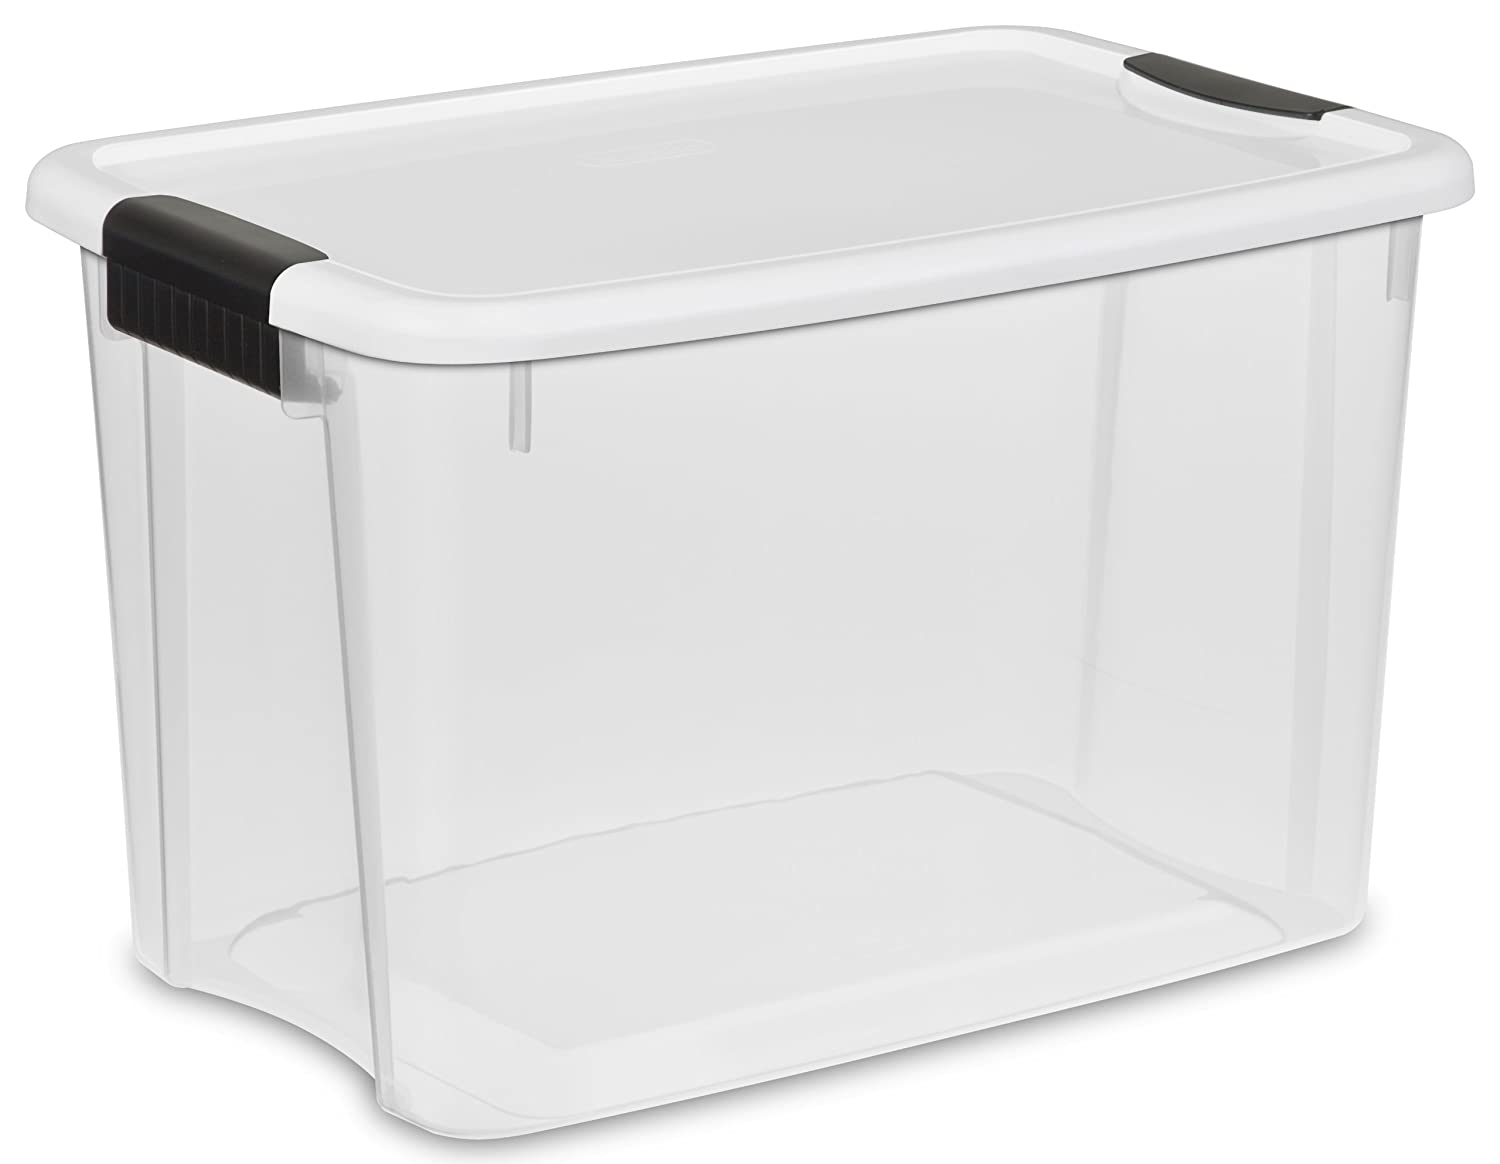 Sterilite Clear Plastic Storage Bins Drawers Stackable